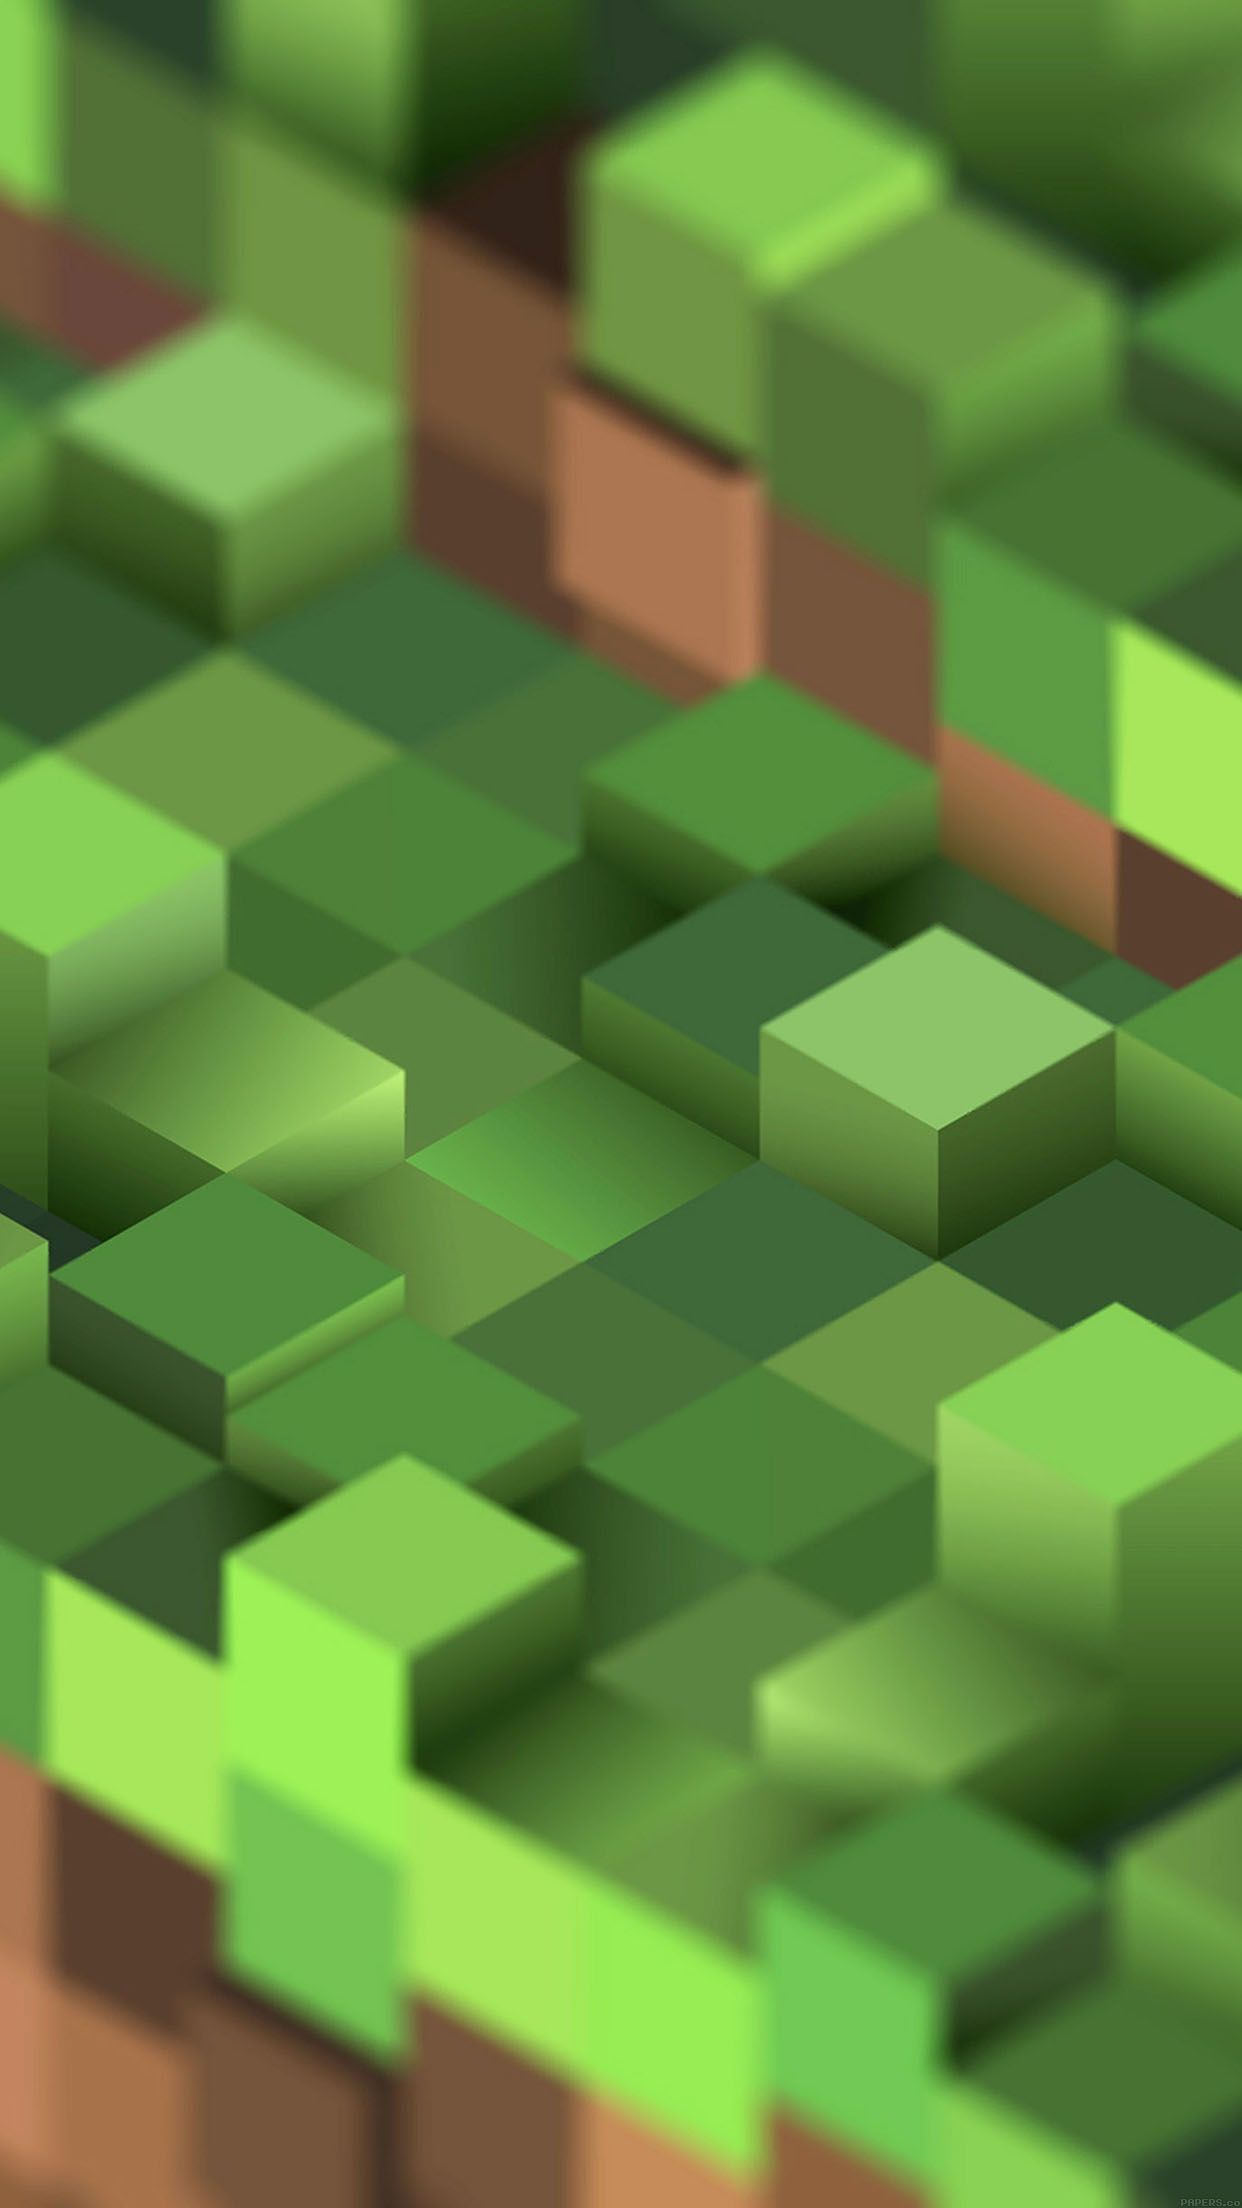 minecraft pixels ☆ find more nerdy #iphone + #android #wallpapers